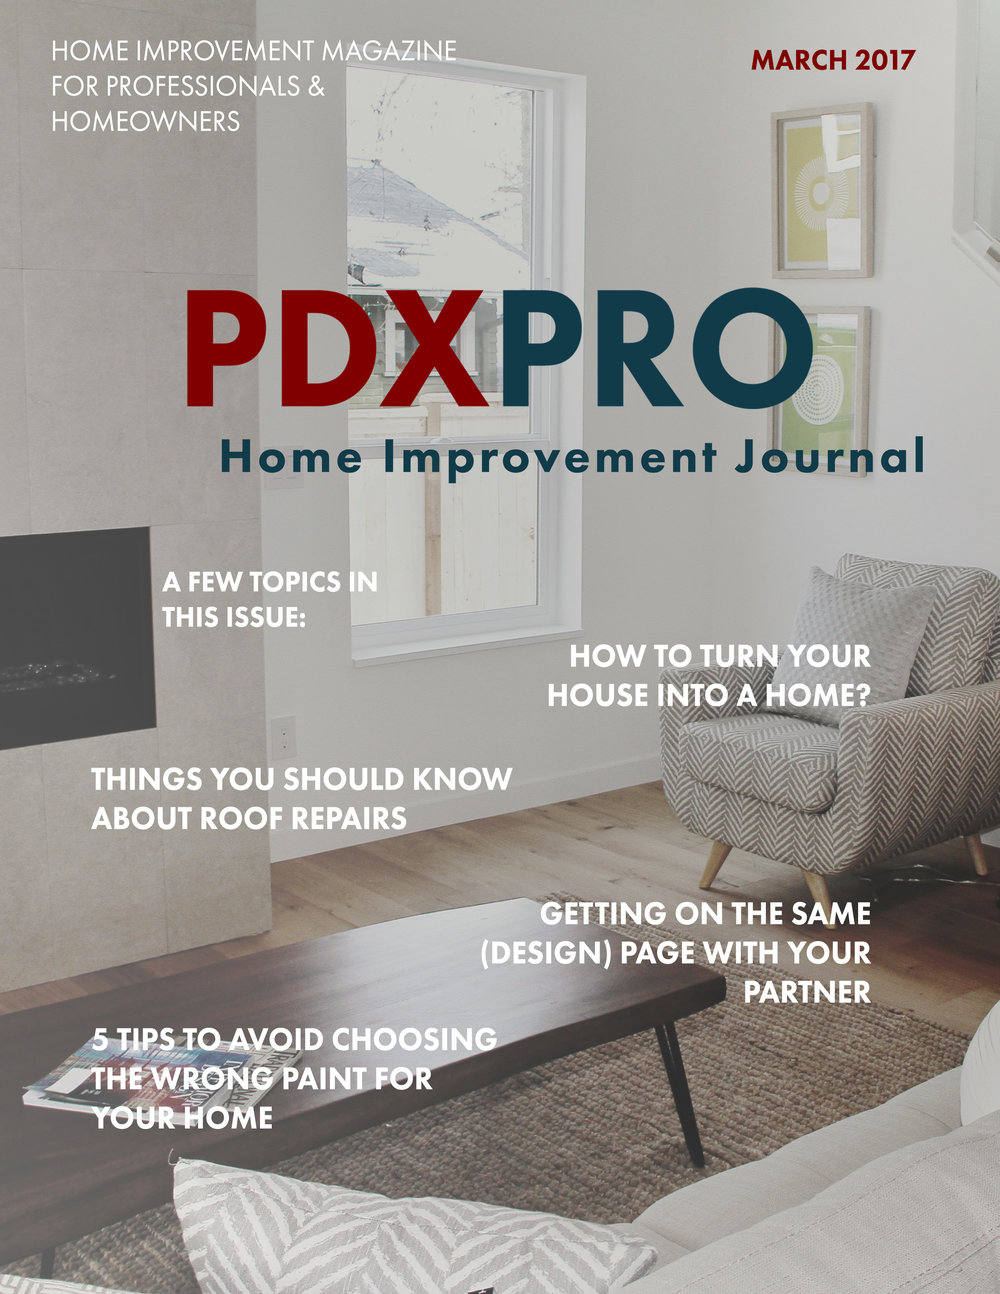 PDXPRO Home Improvement Journal Cover October